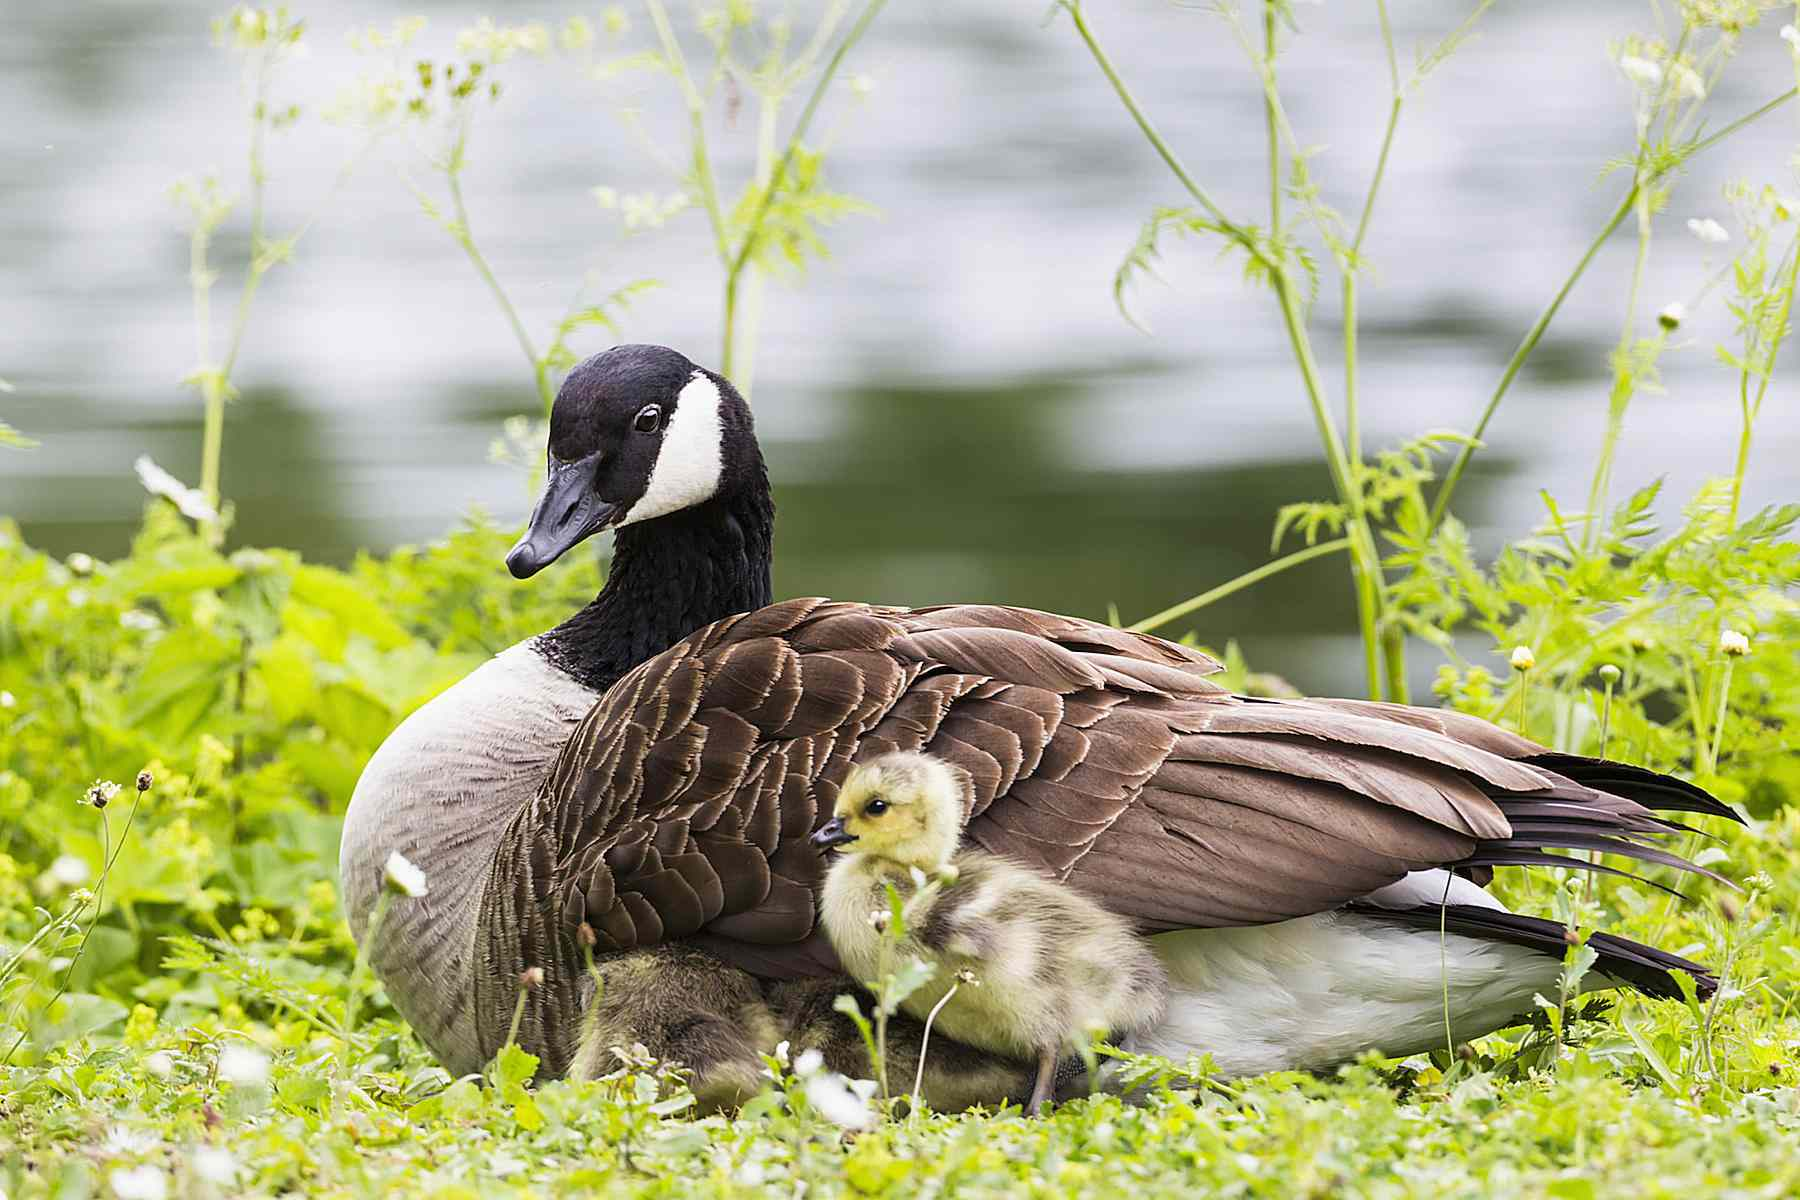 Goose with baby gosling